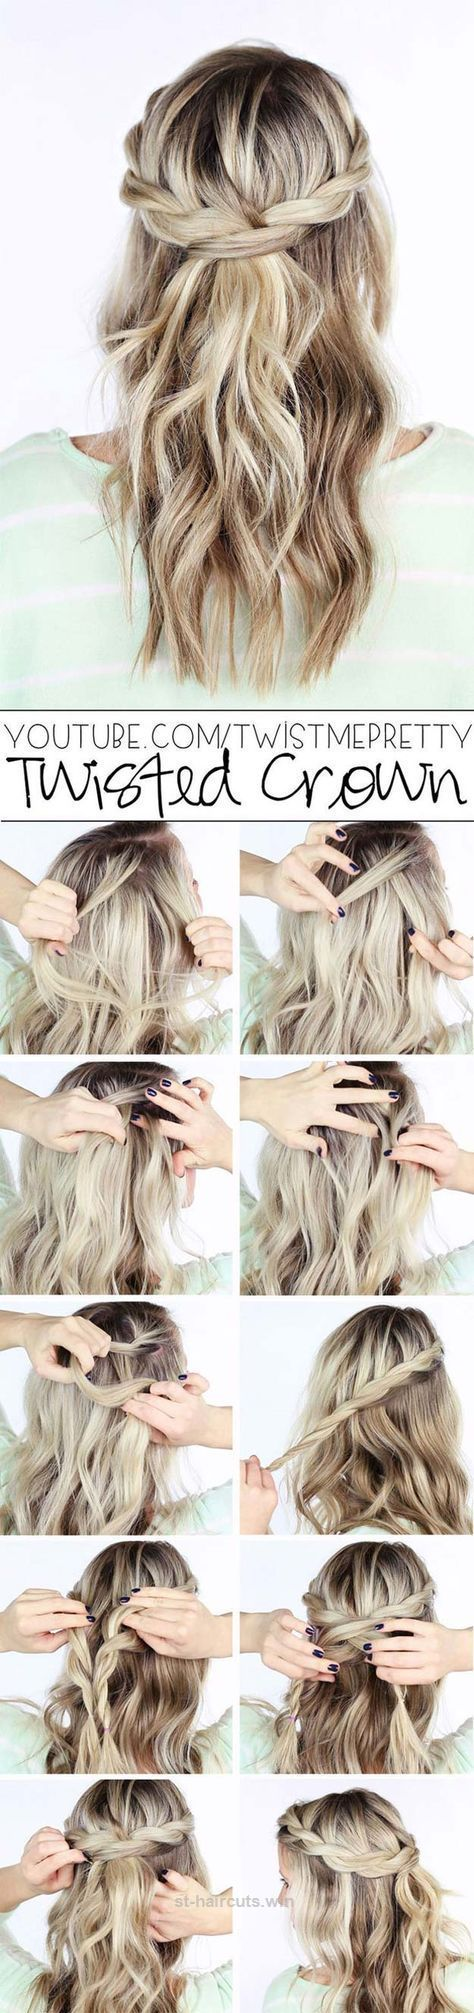 Awesome Cool and Easy DIY Hairstyles – Twisted Crown Braid – Quick and Easy Ideas for Back to School Styles for Medium, Short and Long Hair – Fun Tips and Best Step by Step T ..